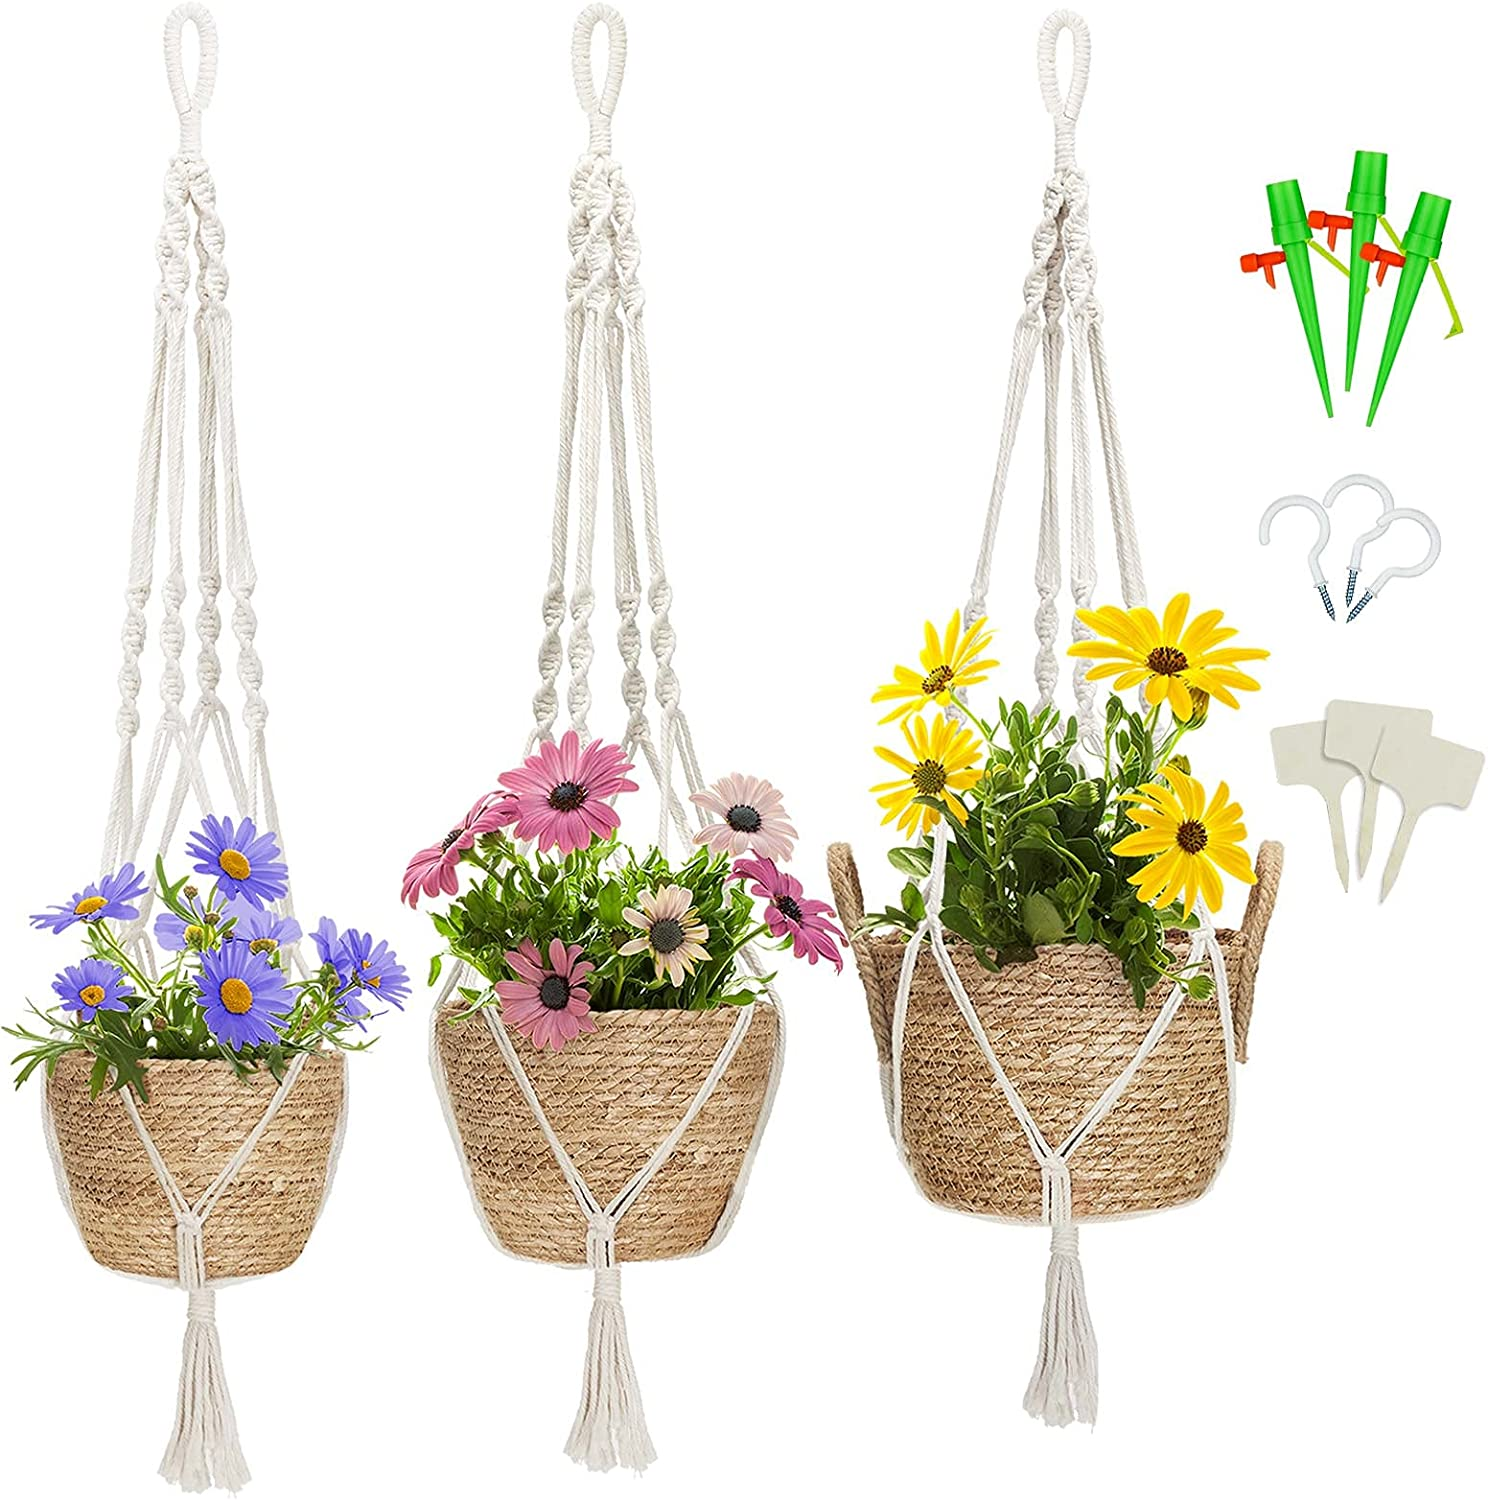 Greenstell Hanging Planters with Planter Plant Set Basket 3 of Max Selling and selling 73% OFF